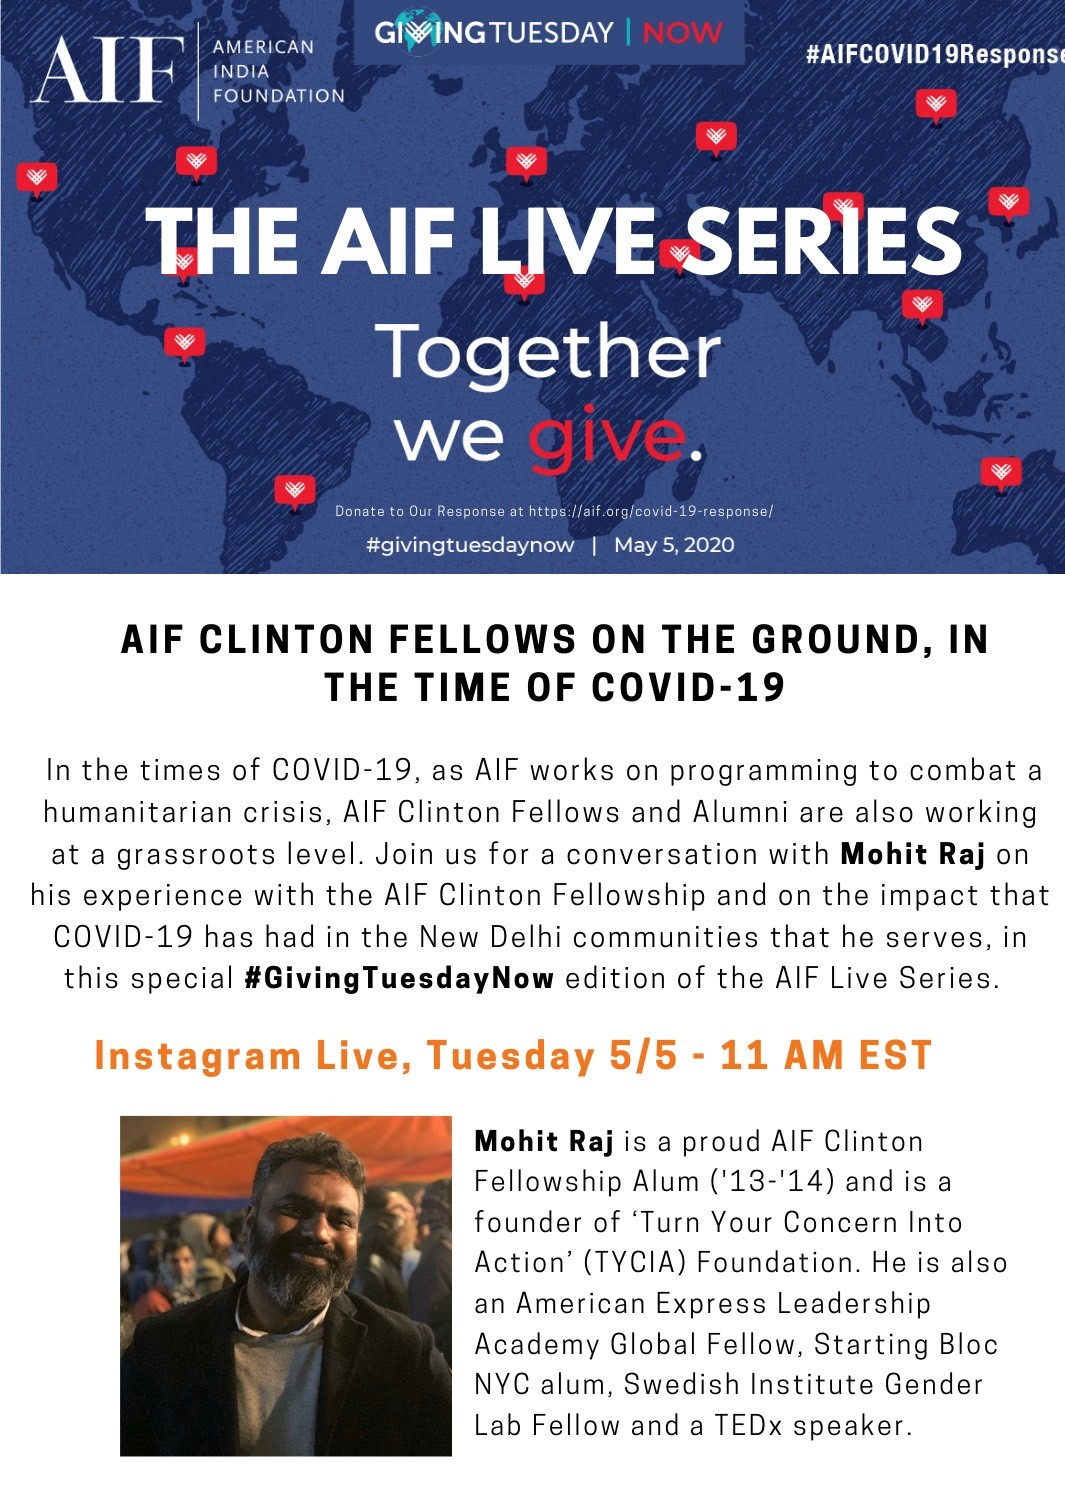 A flyer for the AIF Instagram Live series featuring Mohit Raj.